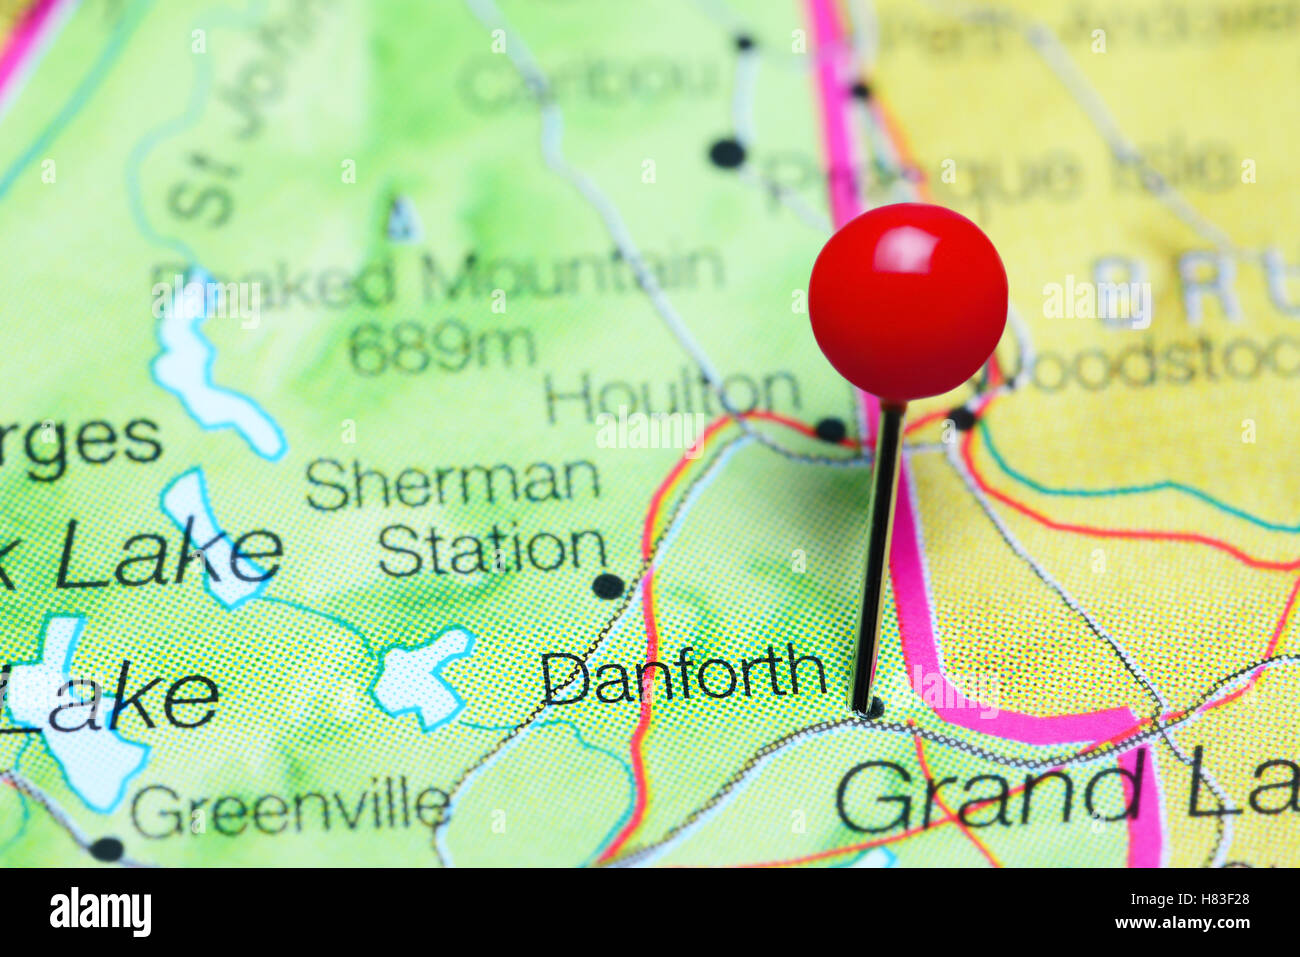 Danforth Maine Map.Danforth Pinned On A Map Of Maine Usa Stock Photo 125467504 Alamy